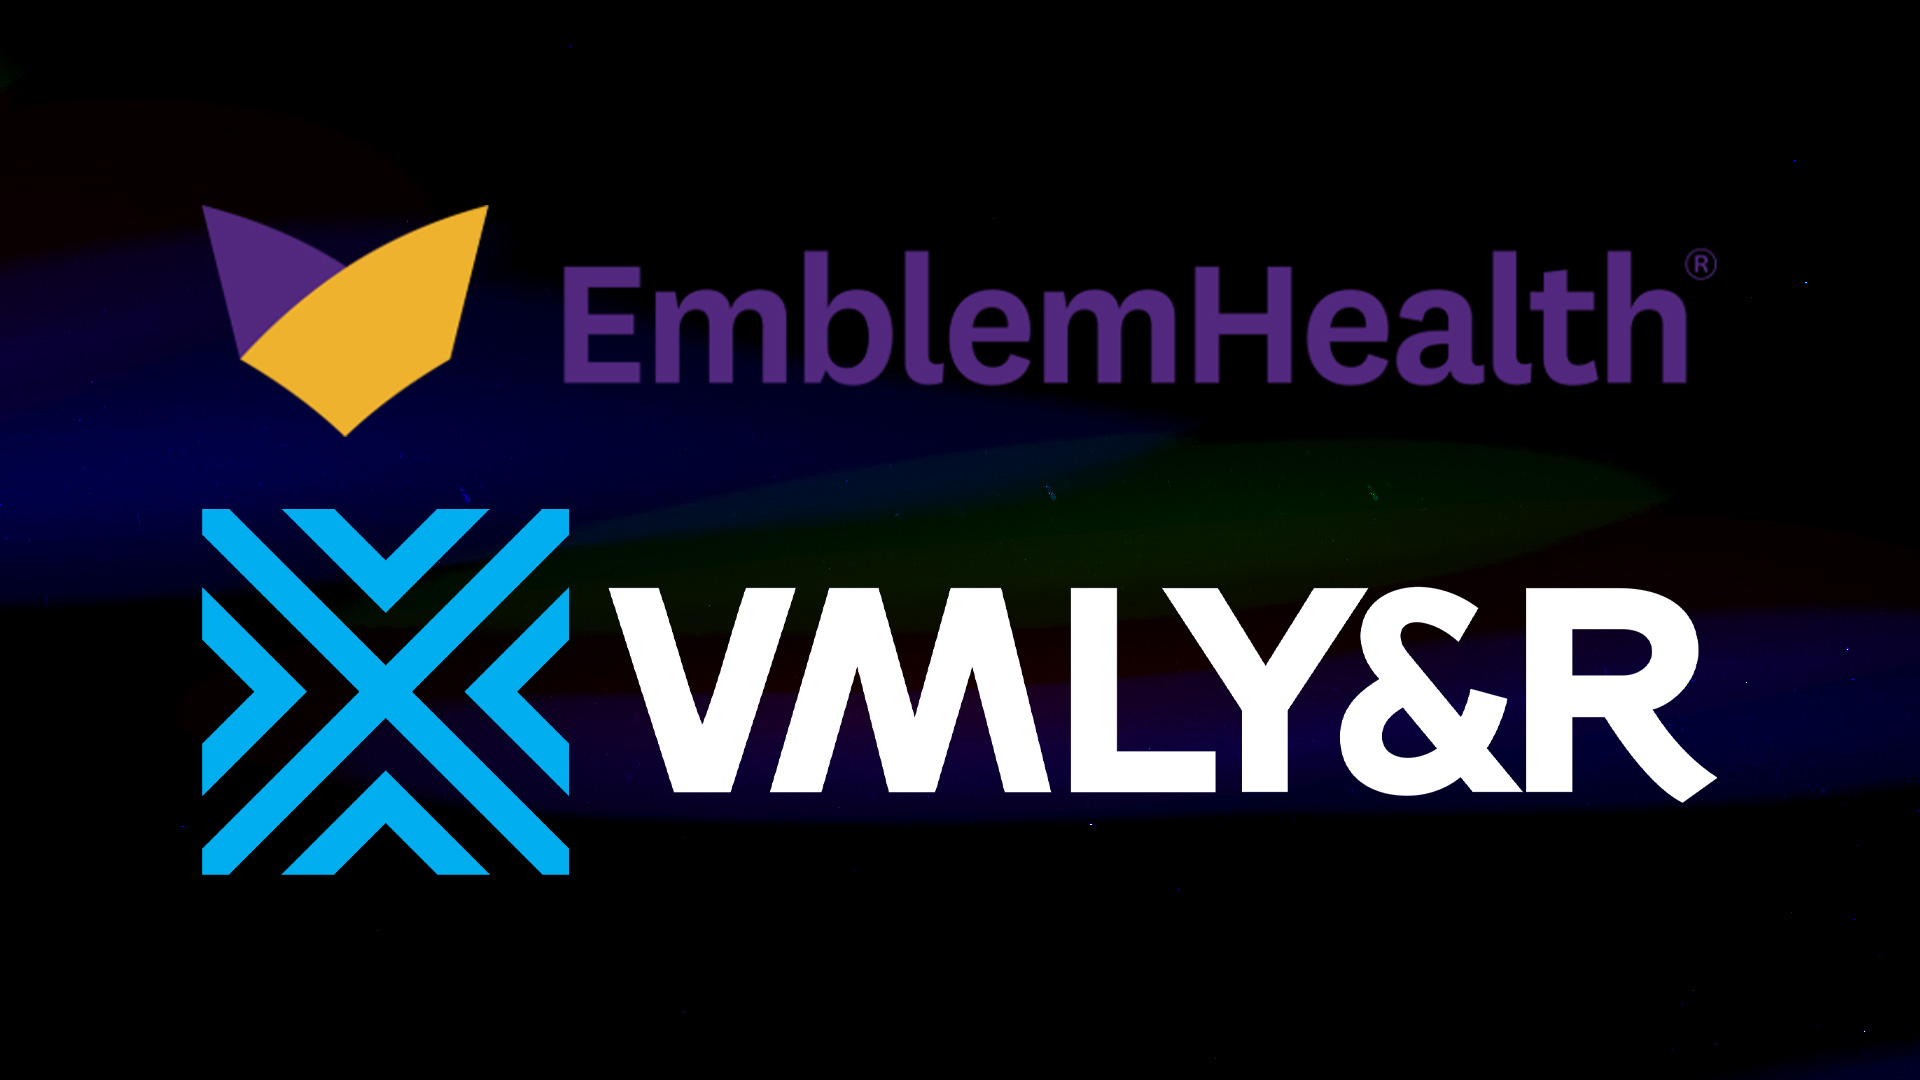 VMLY&R will handle brand communications, marketing strategy, creative assignments and media planning across EmblemHealth companies.